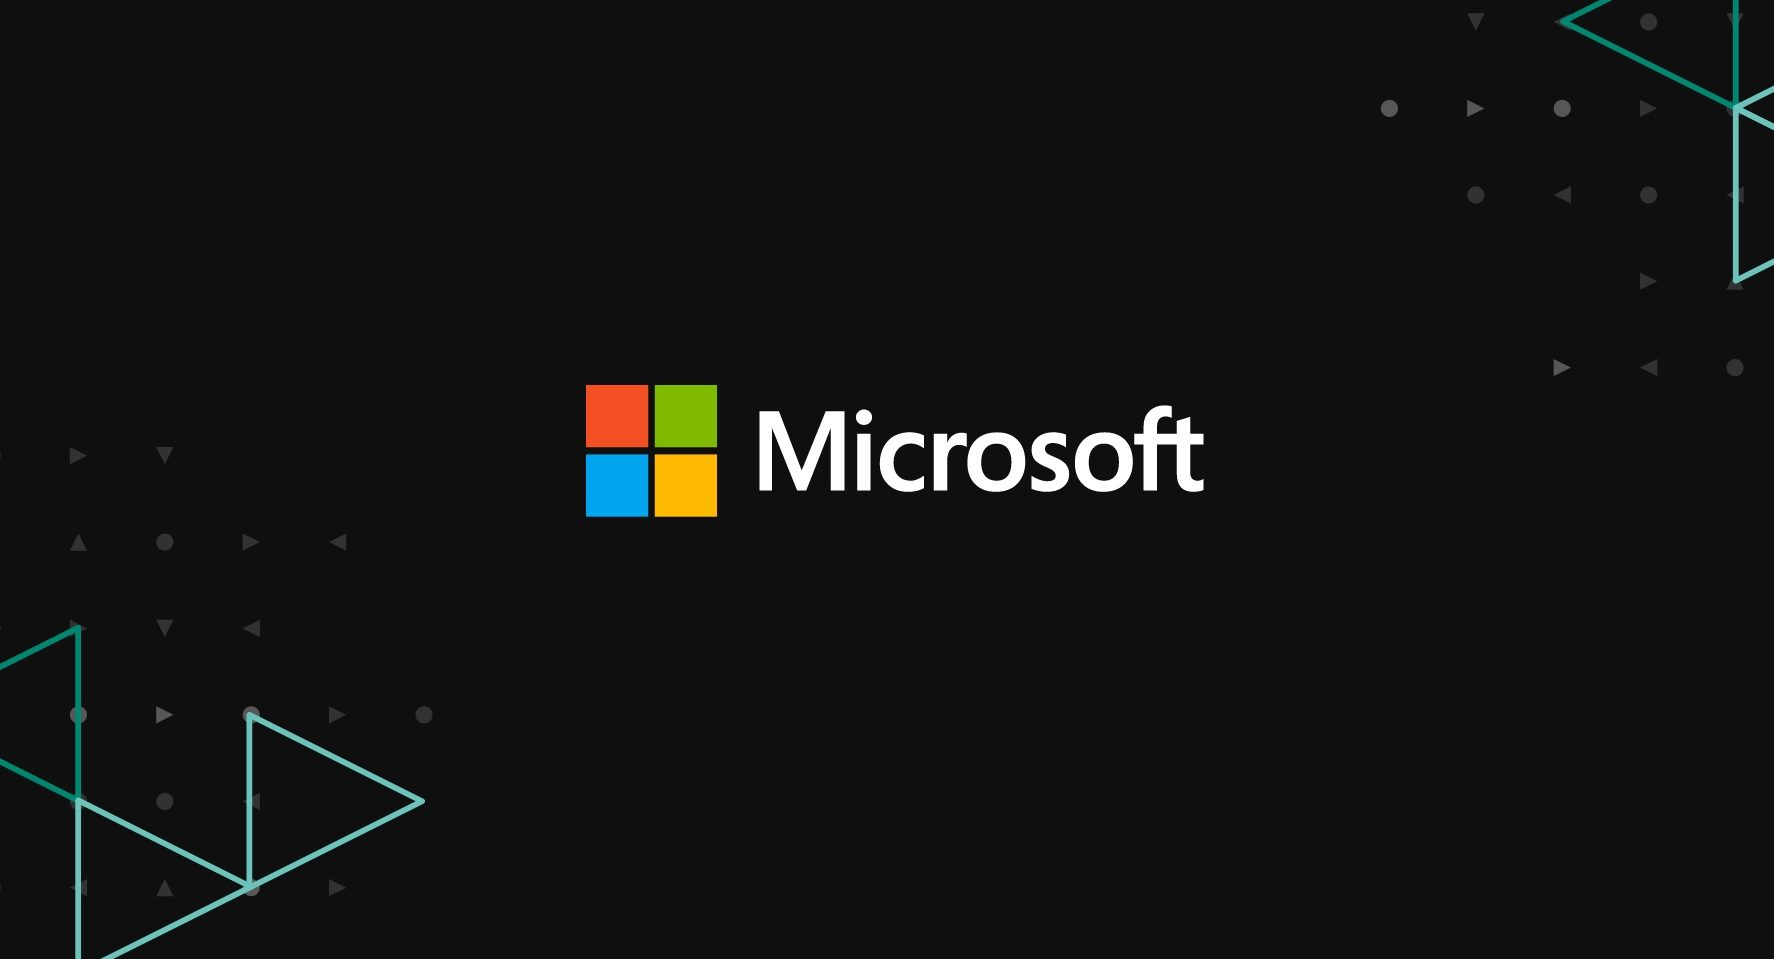 Microsoft Will Make An Important Announcement About Windows Very Soon